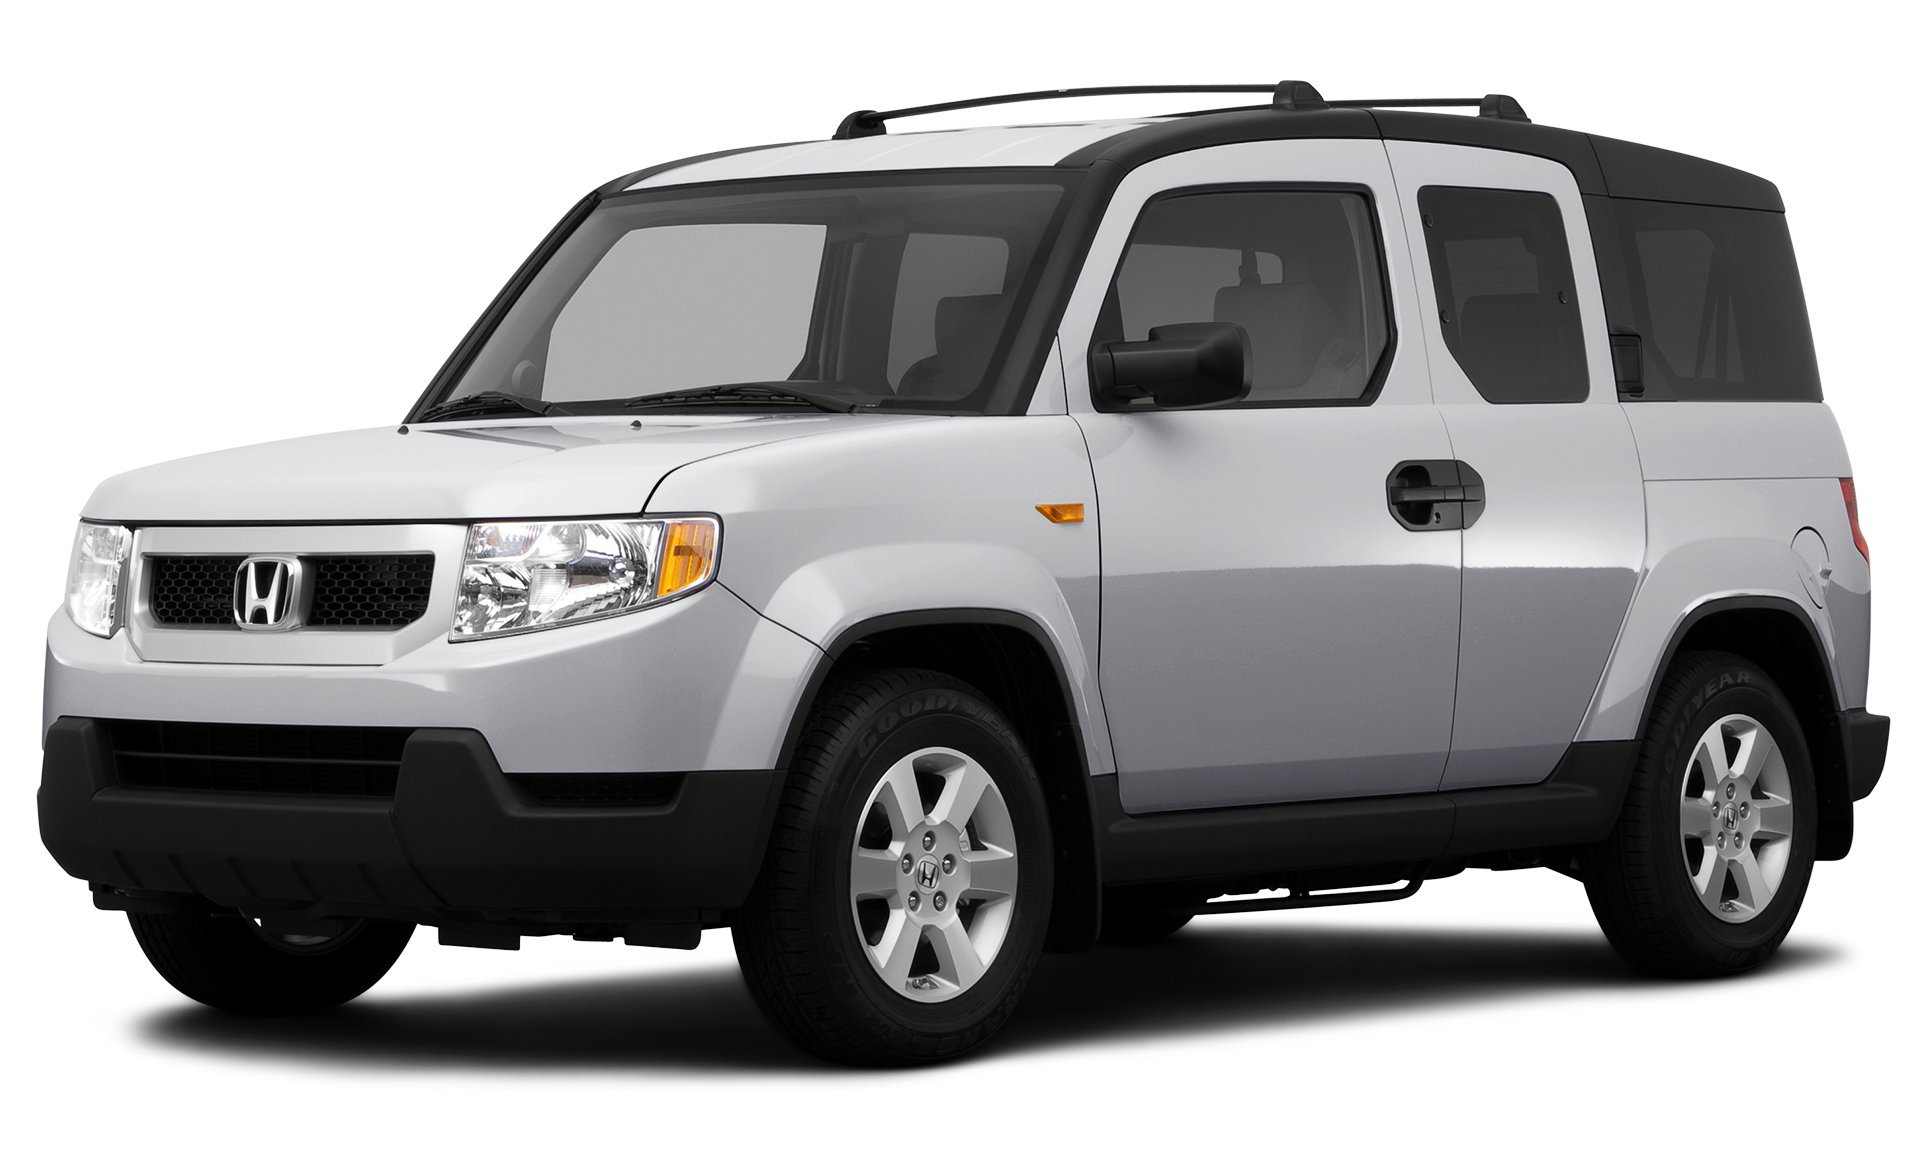 2011 honda element reviews images and specs for Honda element dimensions